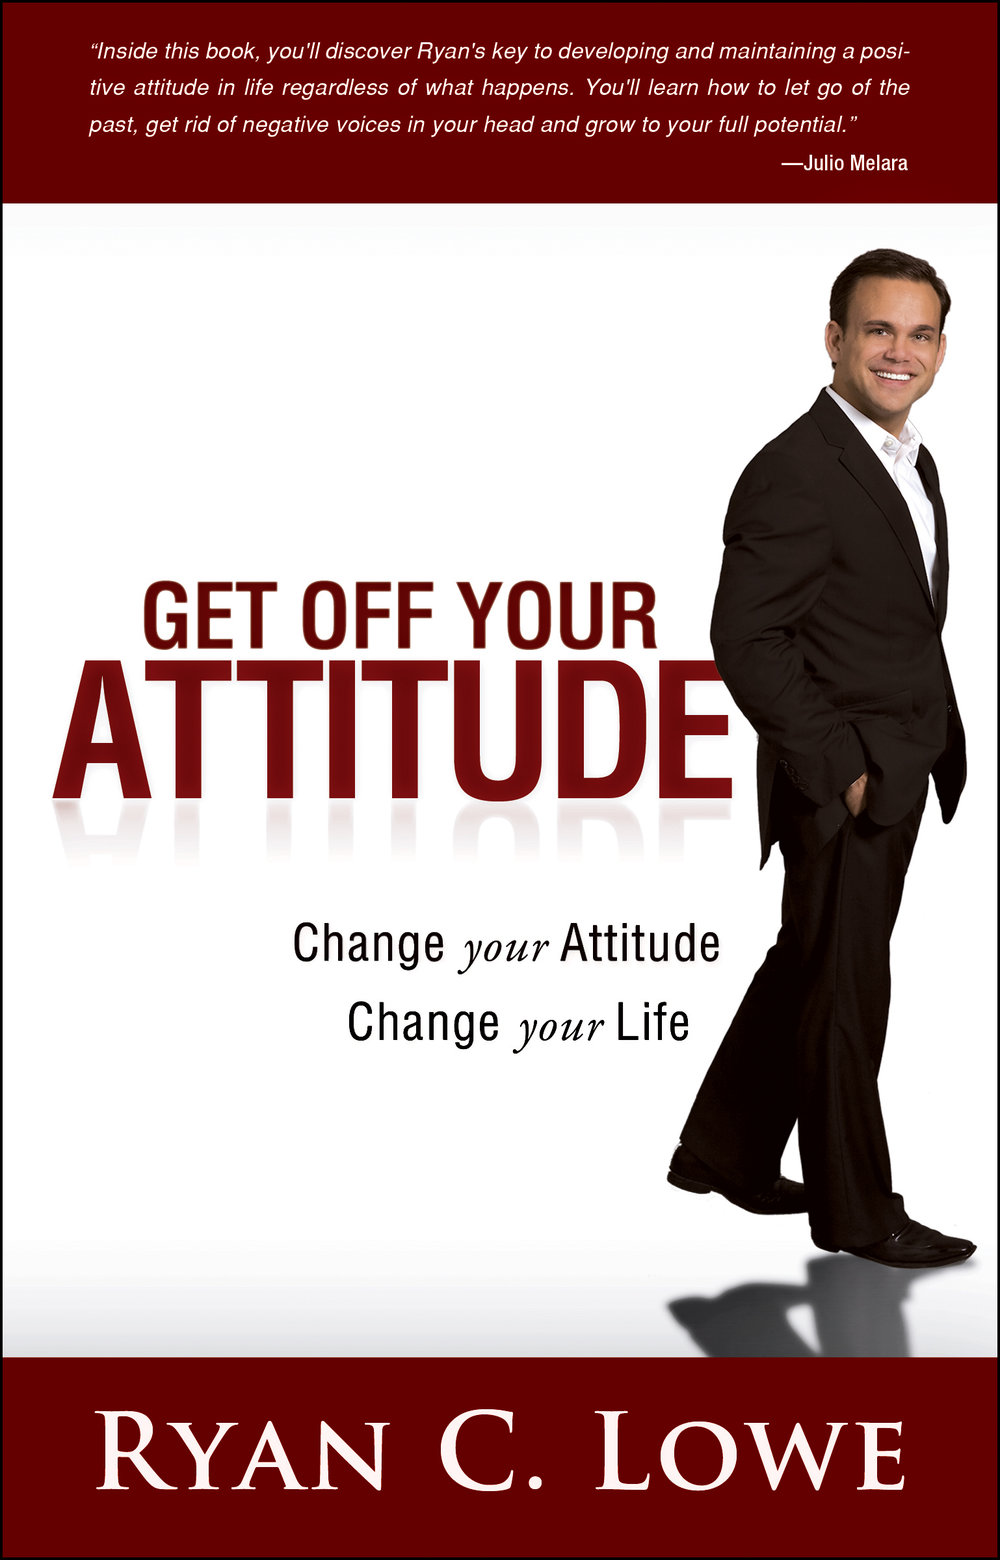 Get Off Your Attitude - By ryan c. lowe